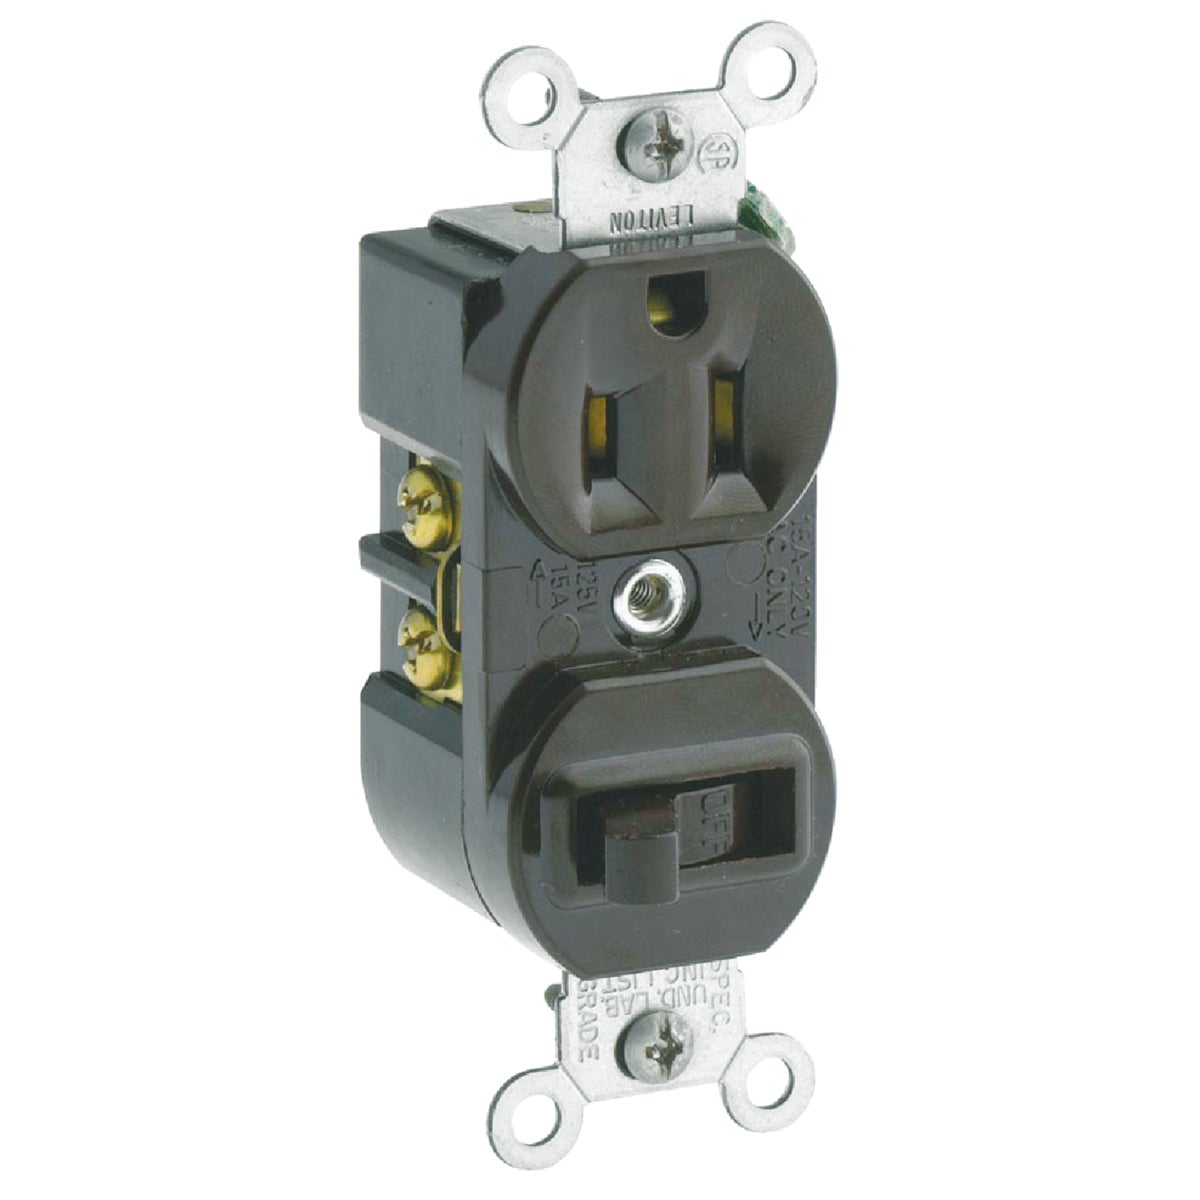 BRN SWITCH/OUTLET